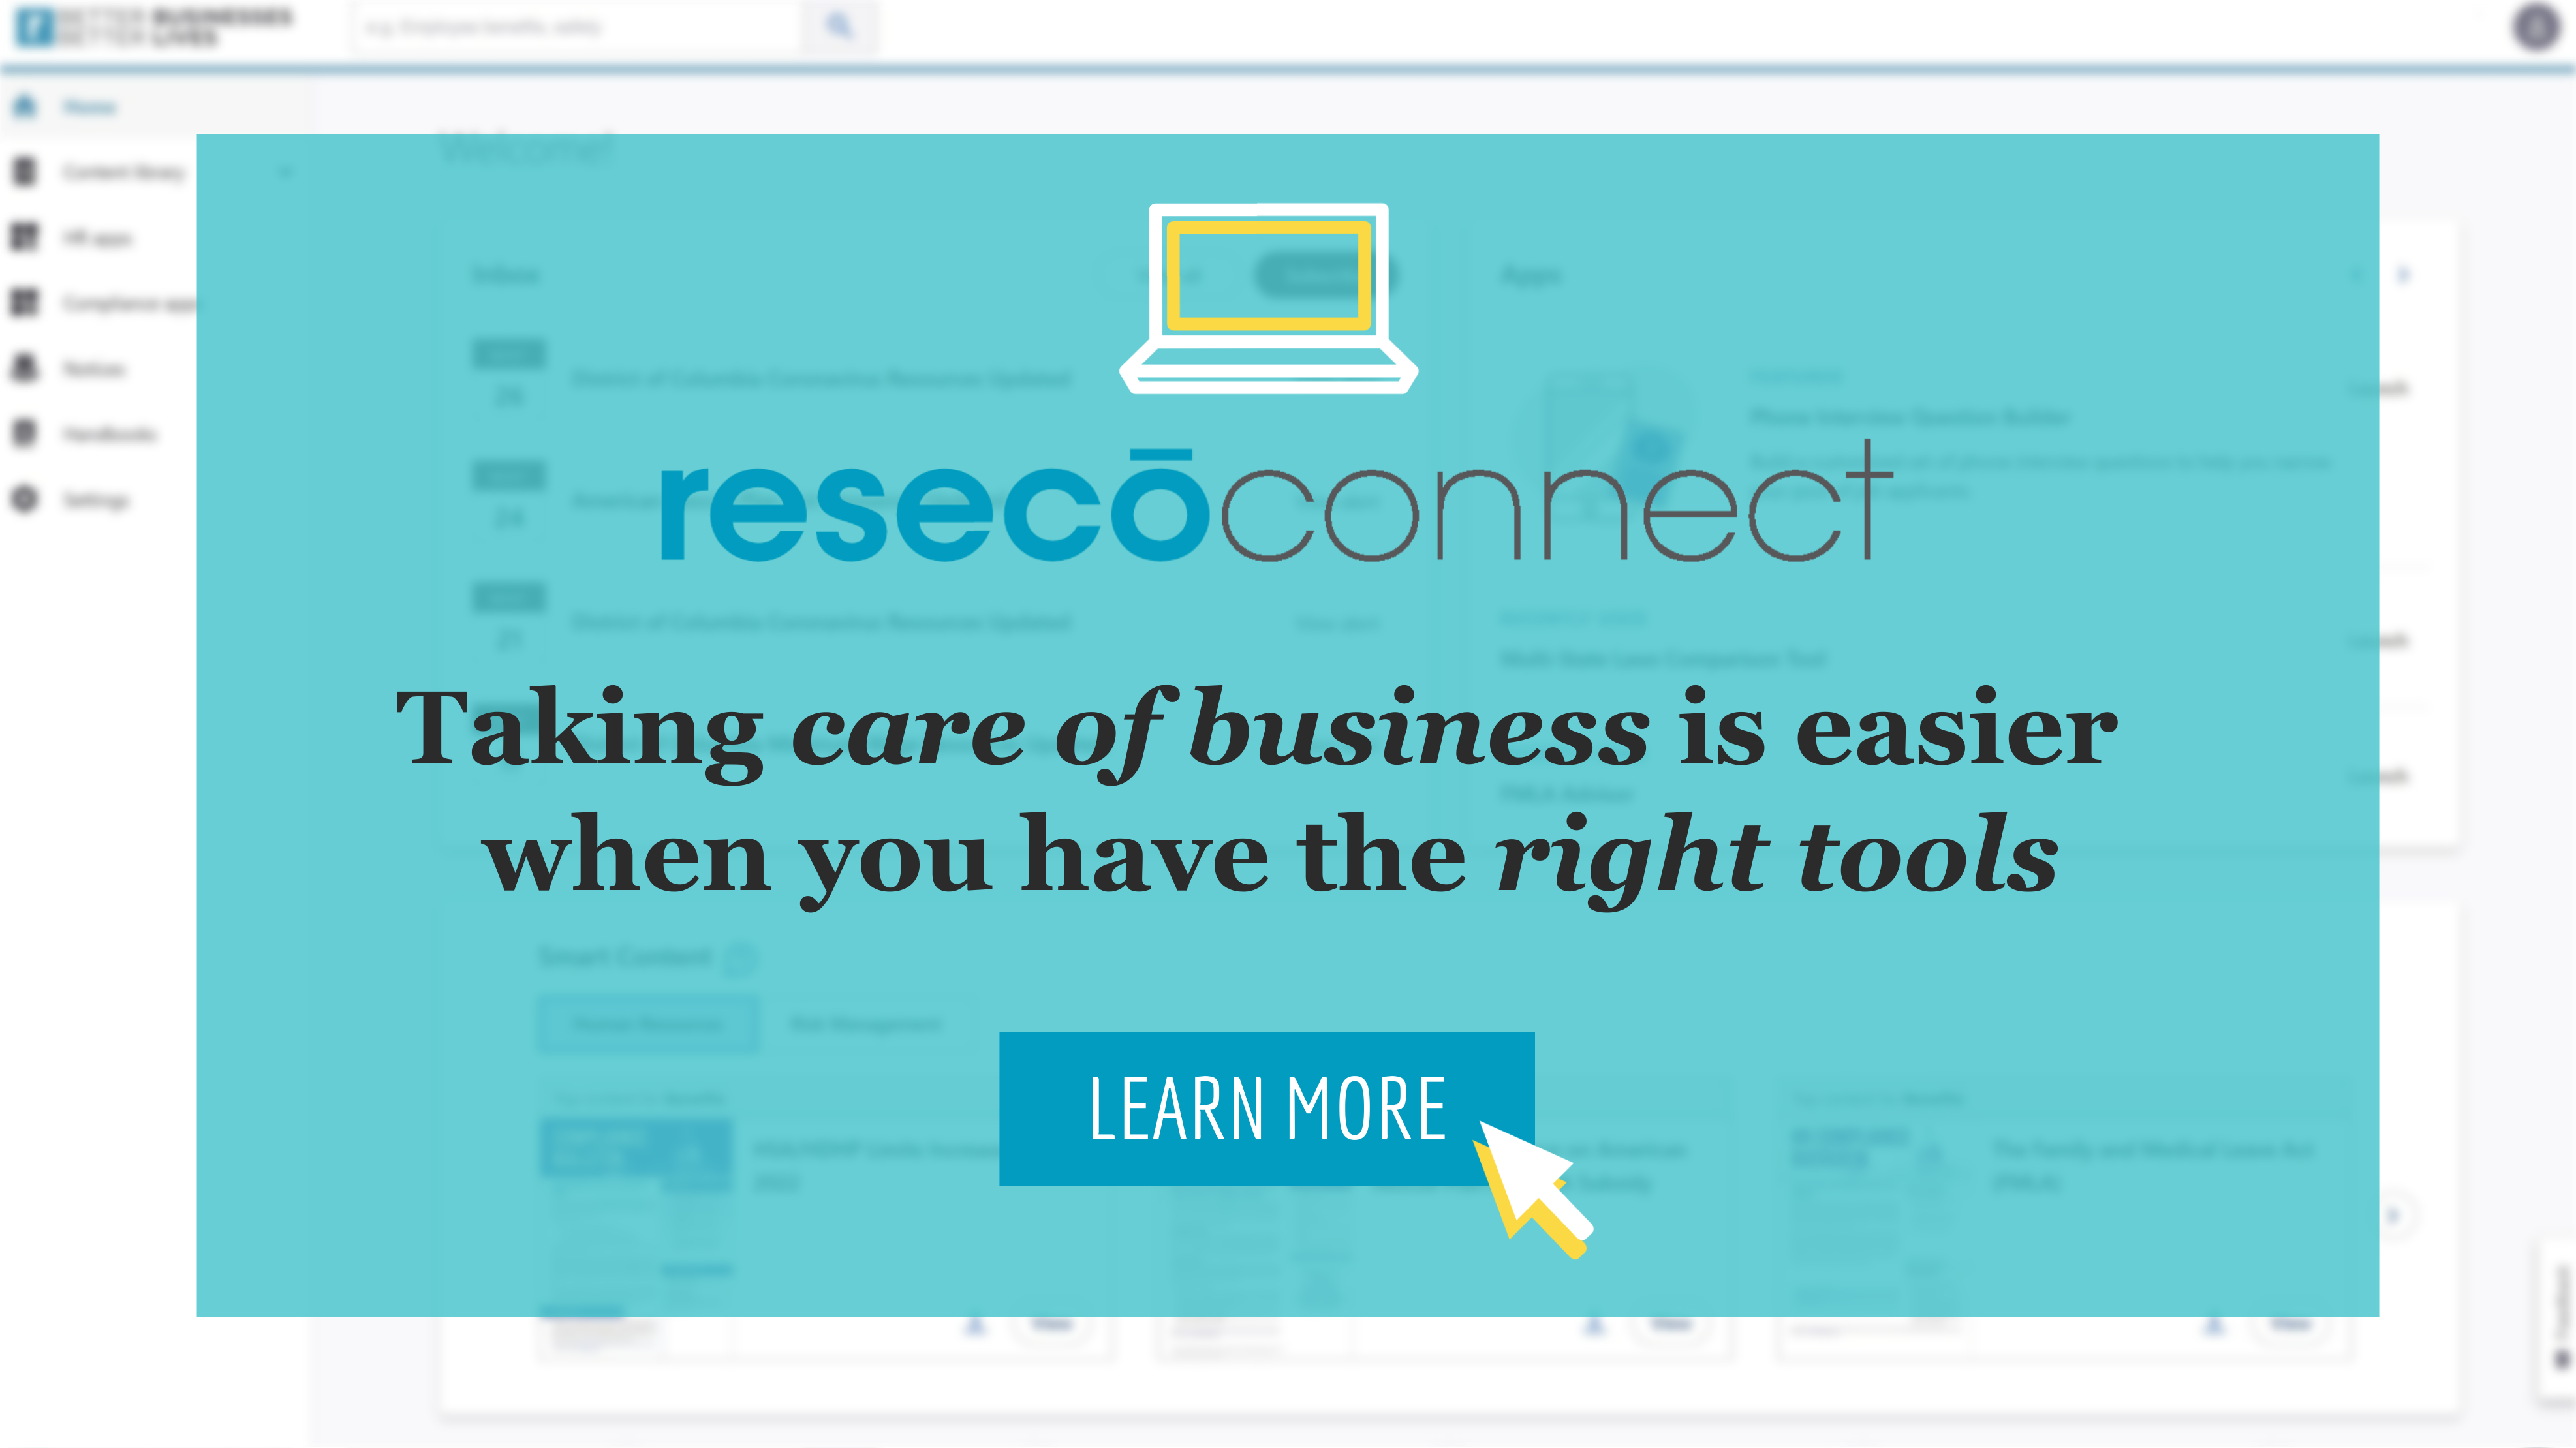 """Image with the phrase """"ResecoConnect, Taking care of business is easier when you have the right tools, Learn More"""""""